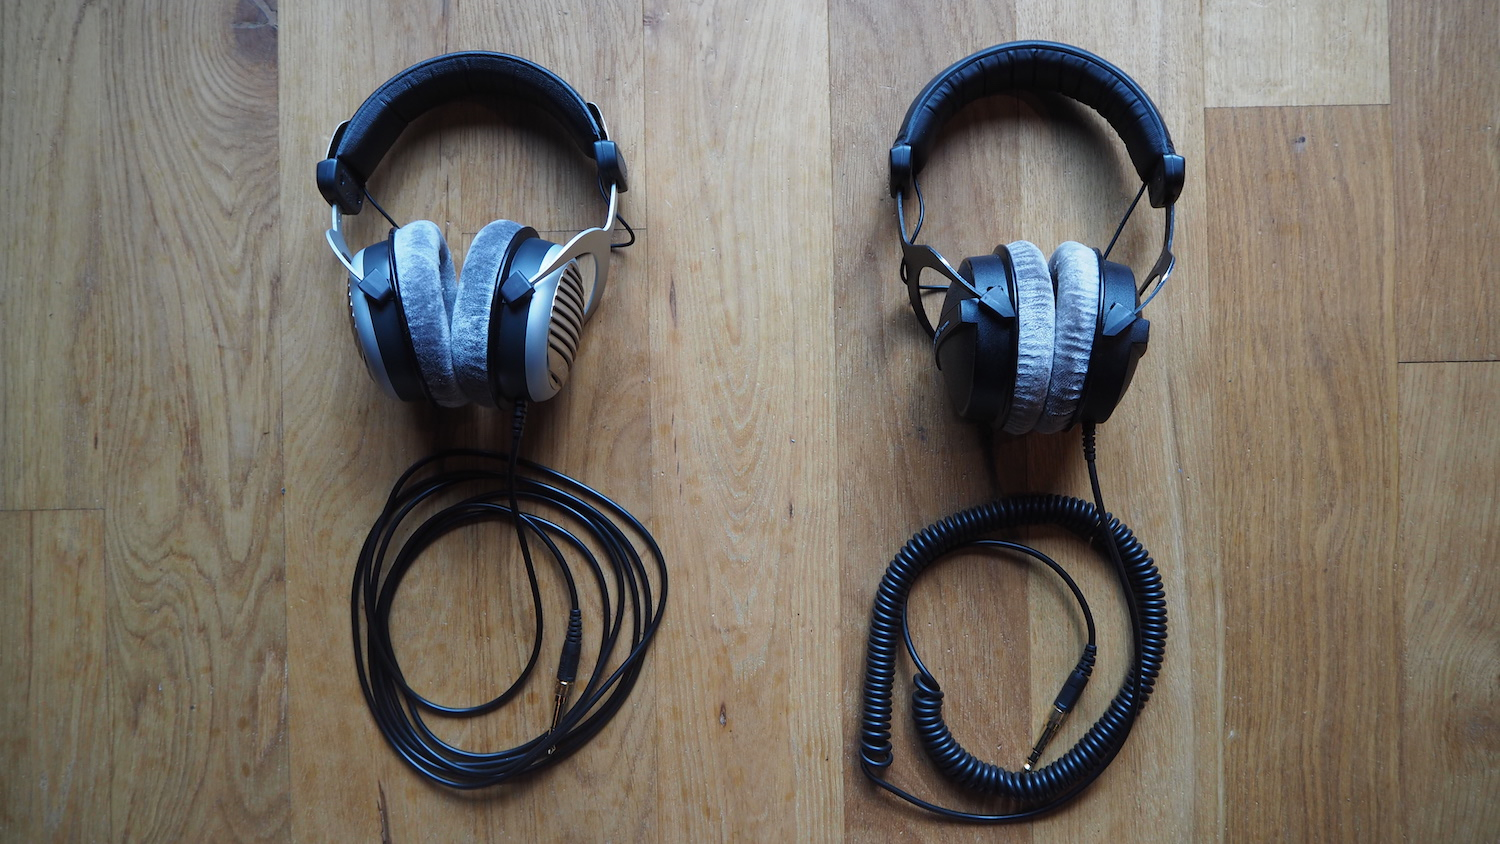 difference between 80 ohm and 250 ohm headphones